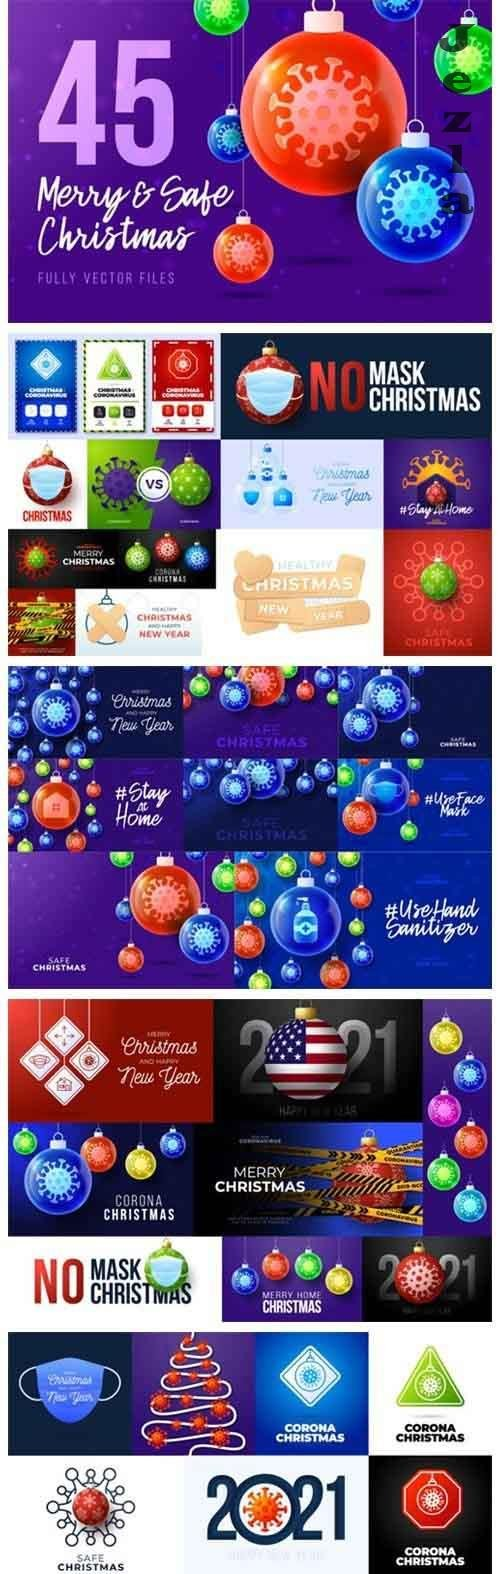 45 Merry and Safe Christmas Banners - 1013921